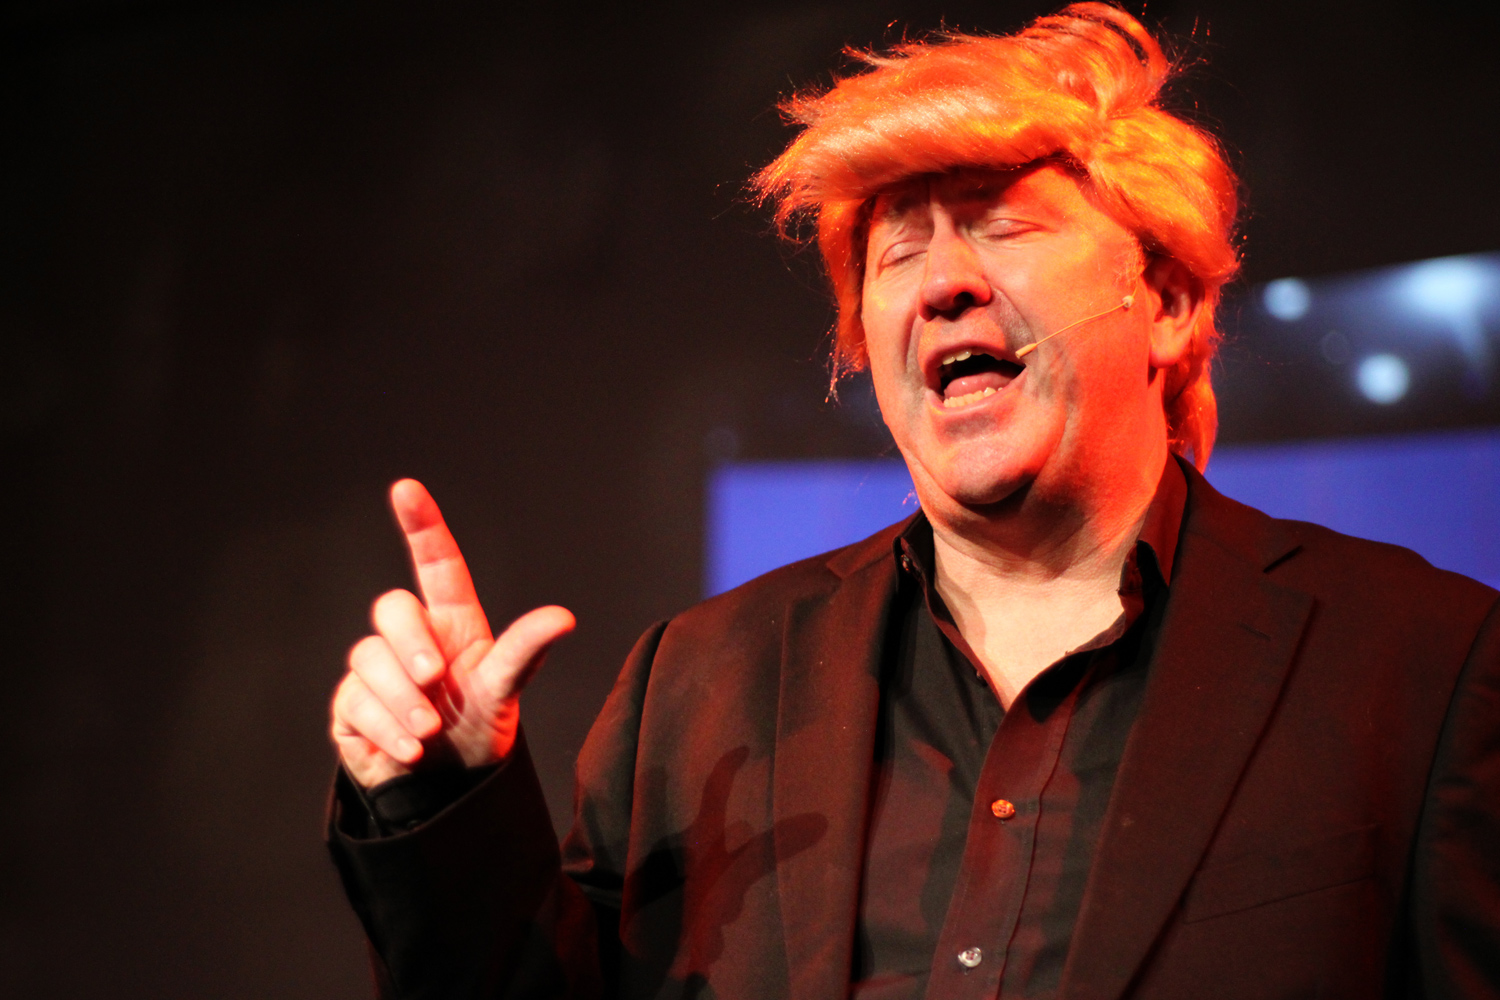 Mark Brailsford as Donald Trump